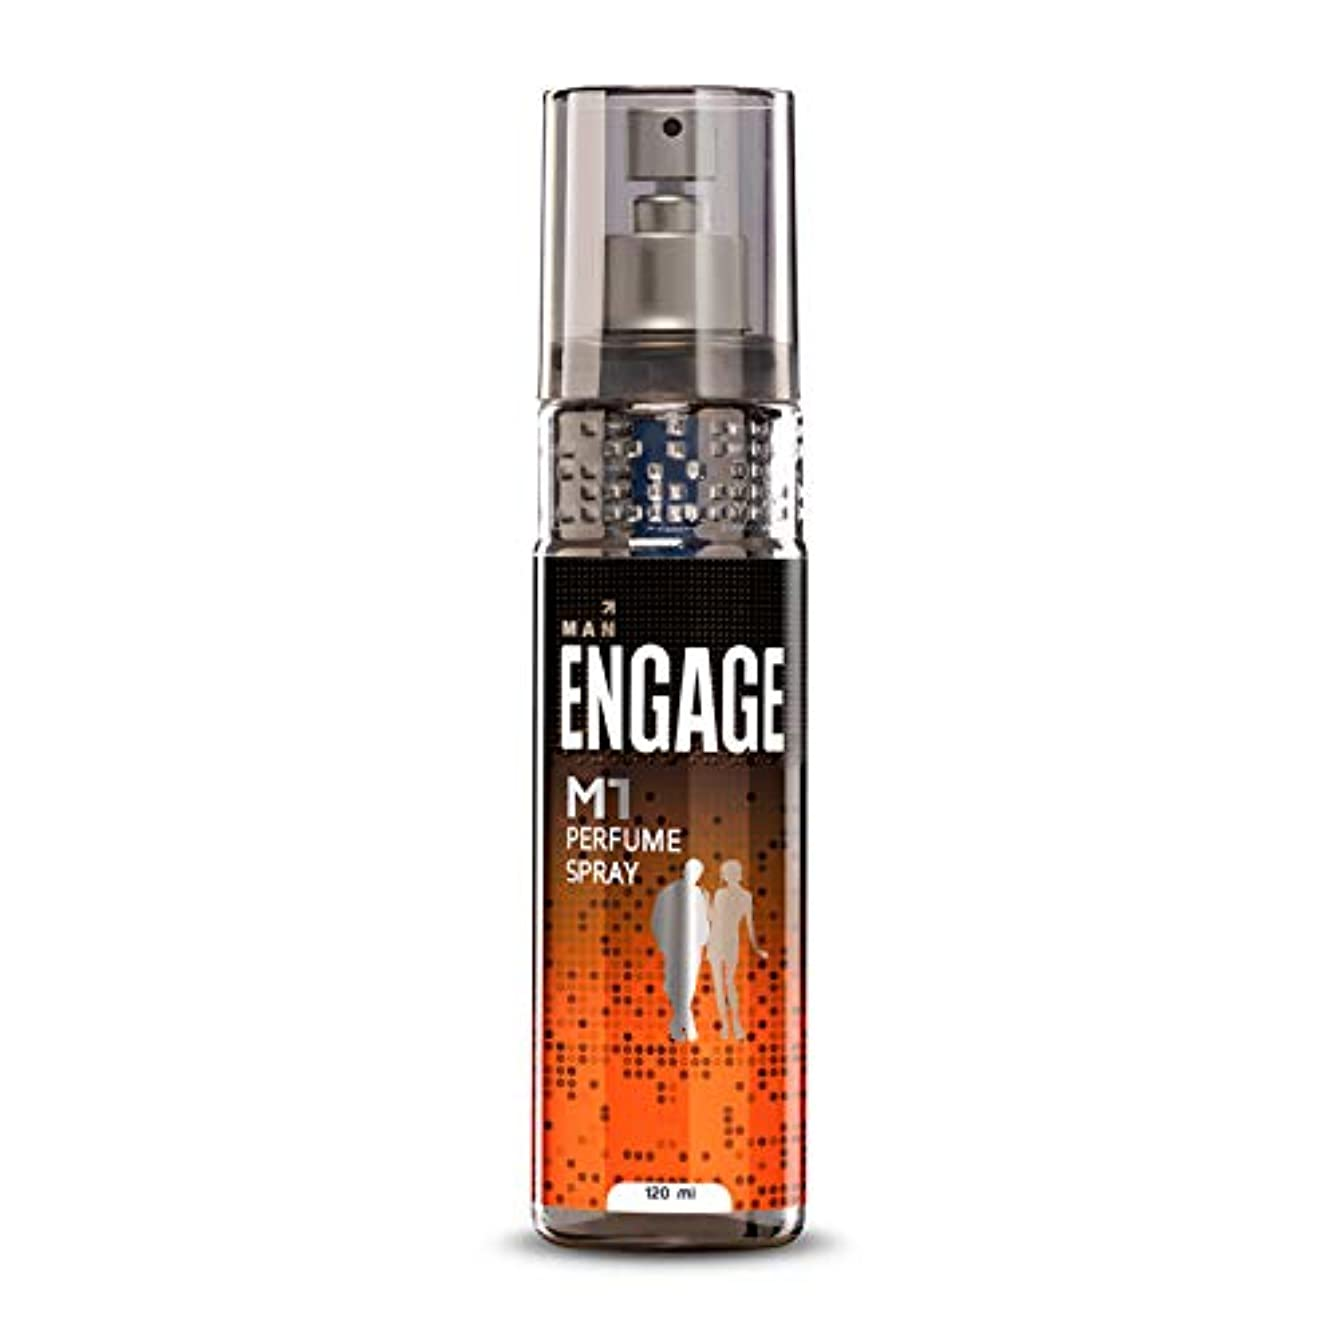 所有者計画的知覚するEngage M1 Perfume Spray For Men, 120ml